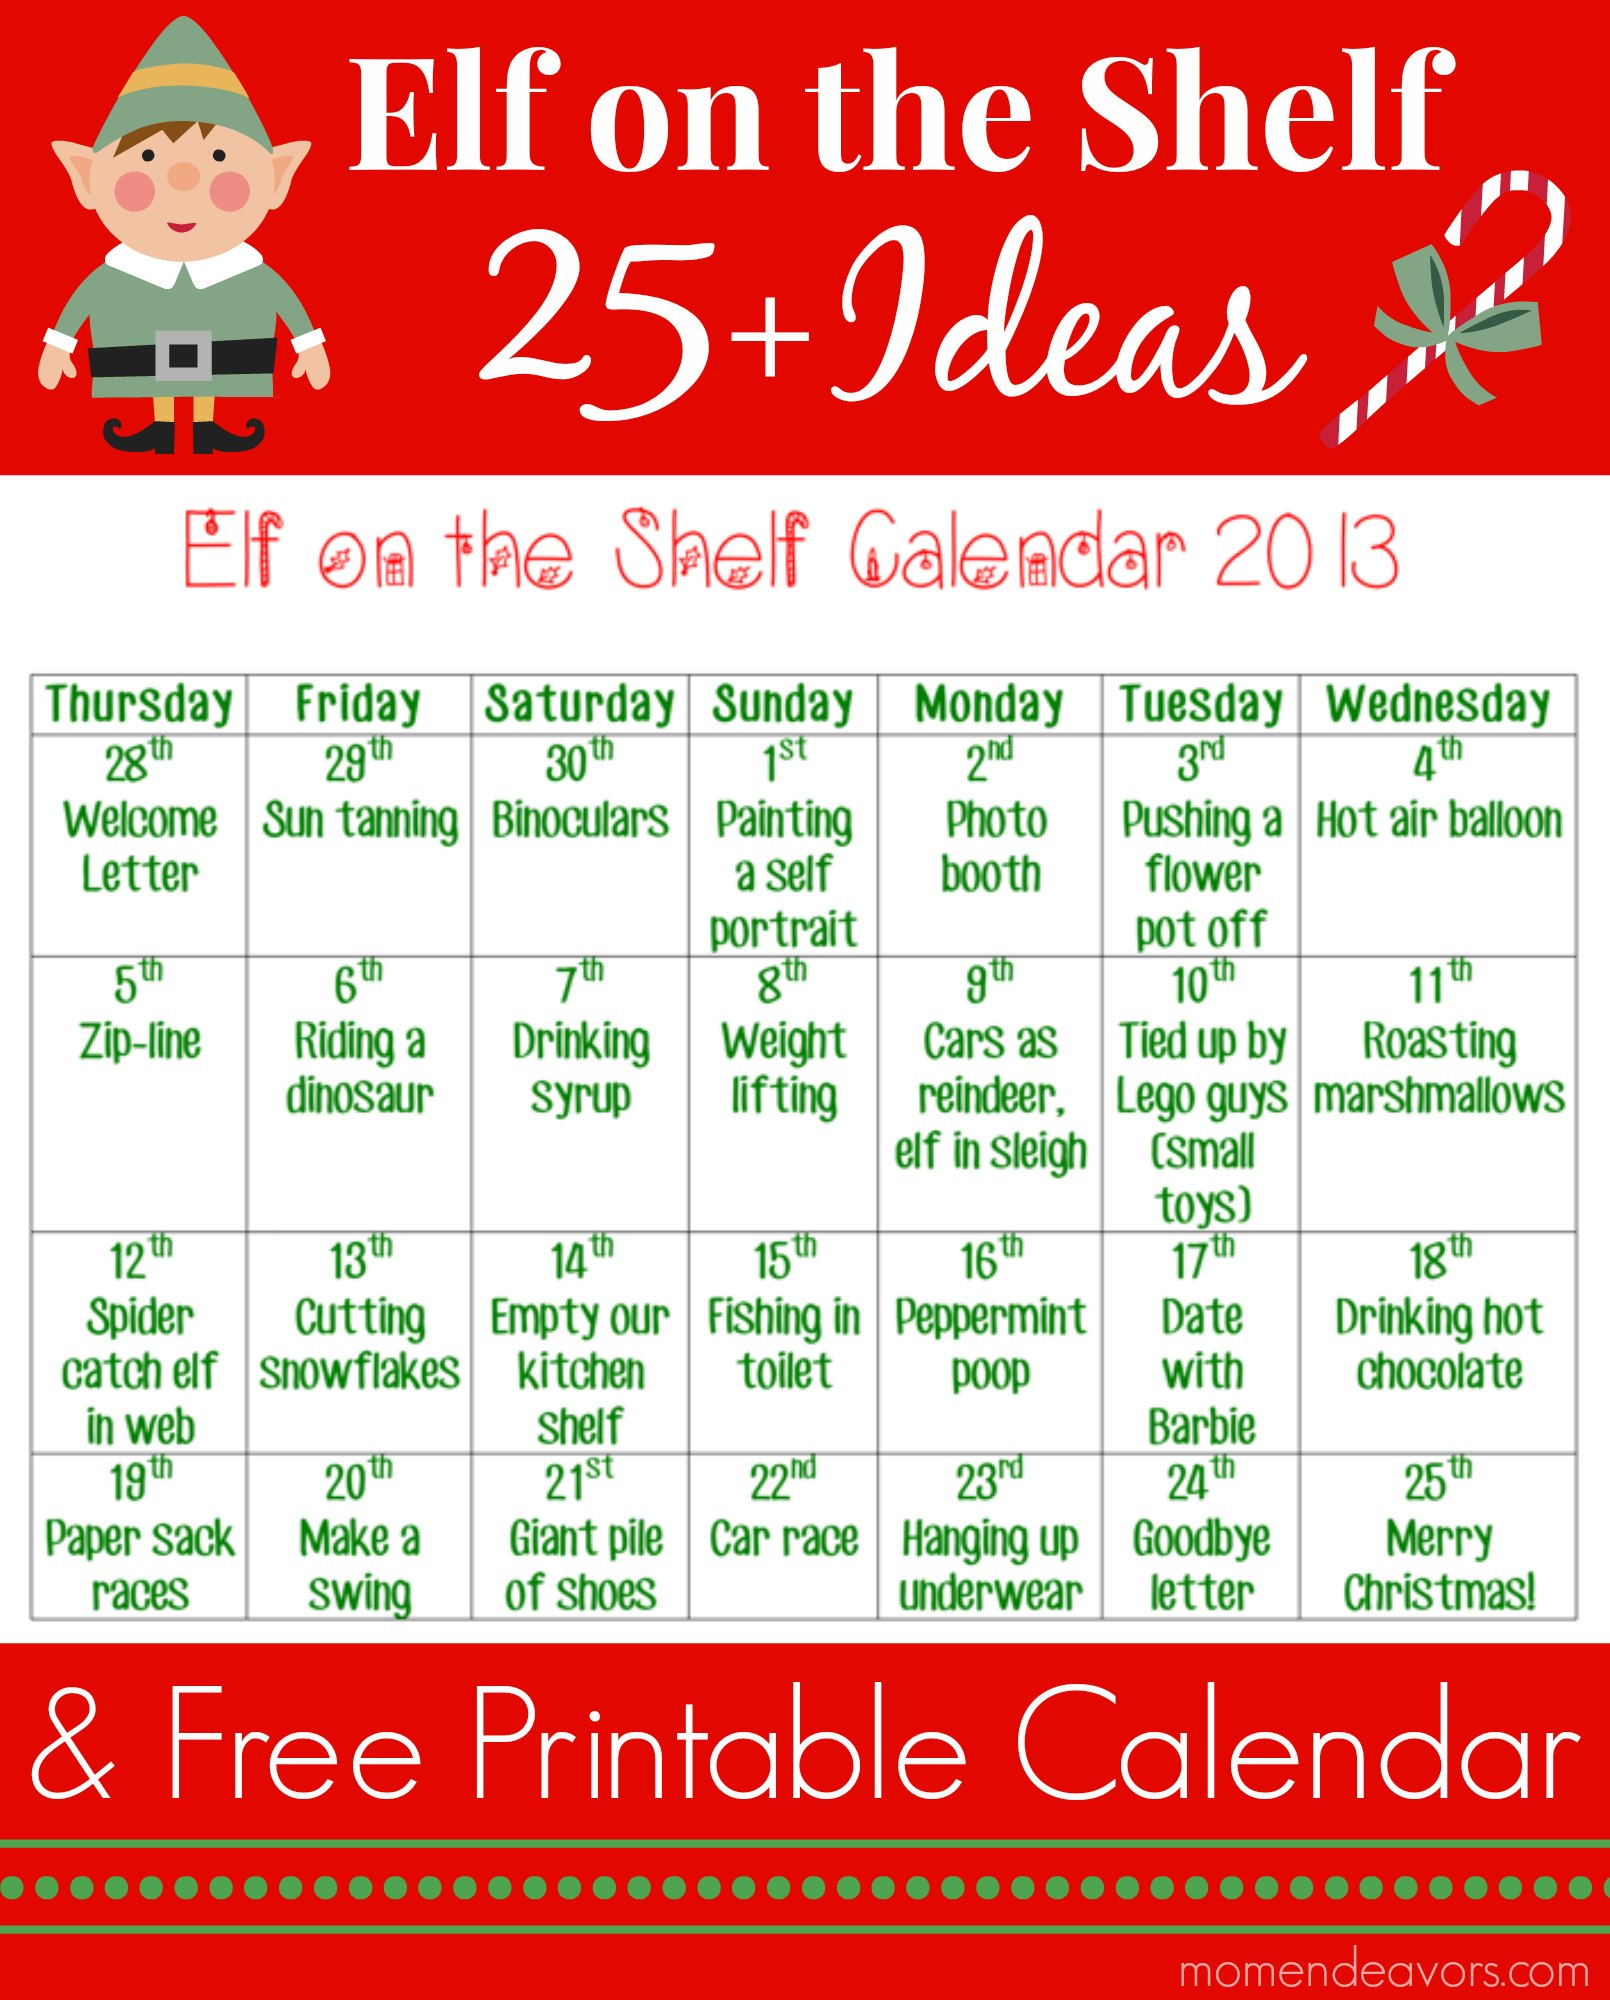 content uploads 2013 12 Elf on the Shelf Ideas printable calendar jpg